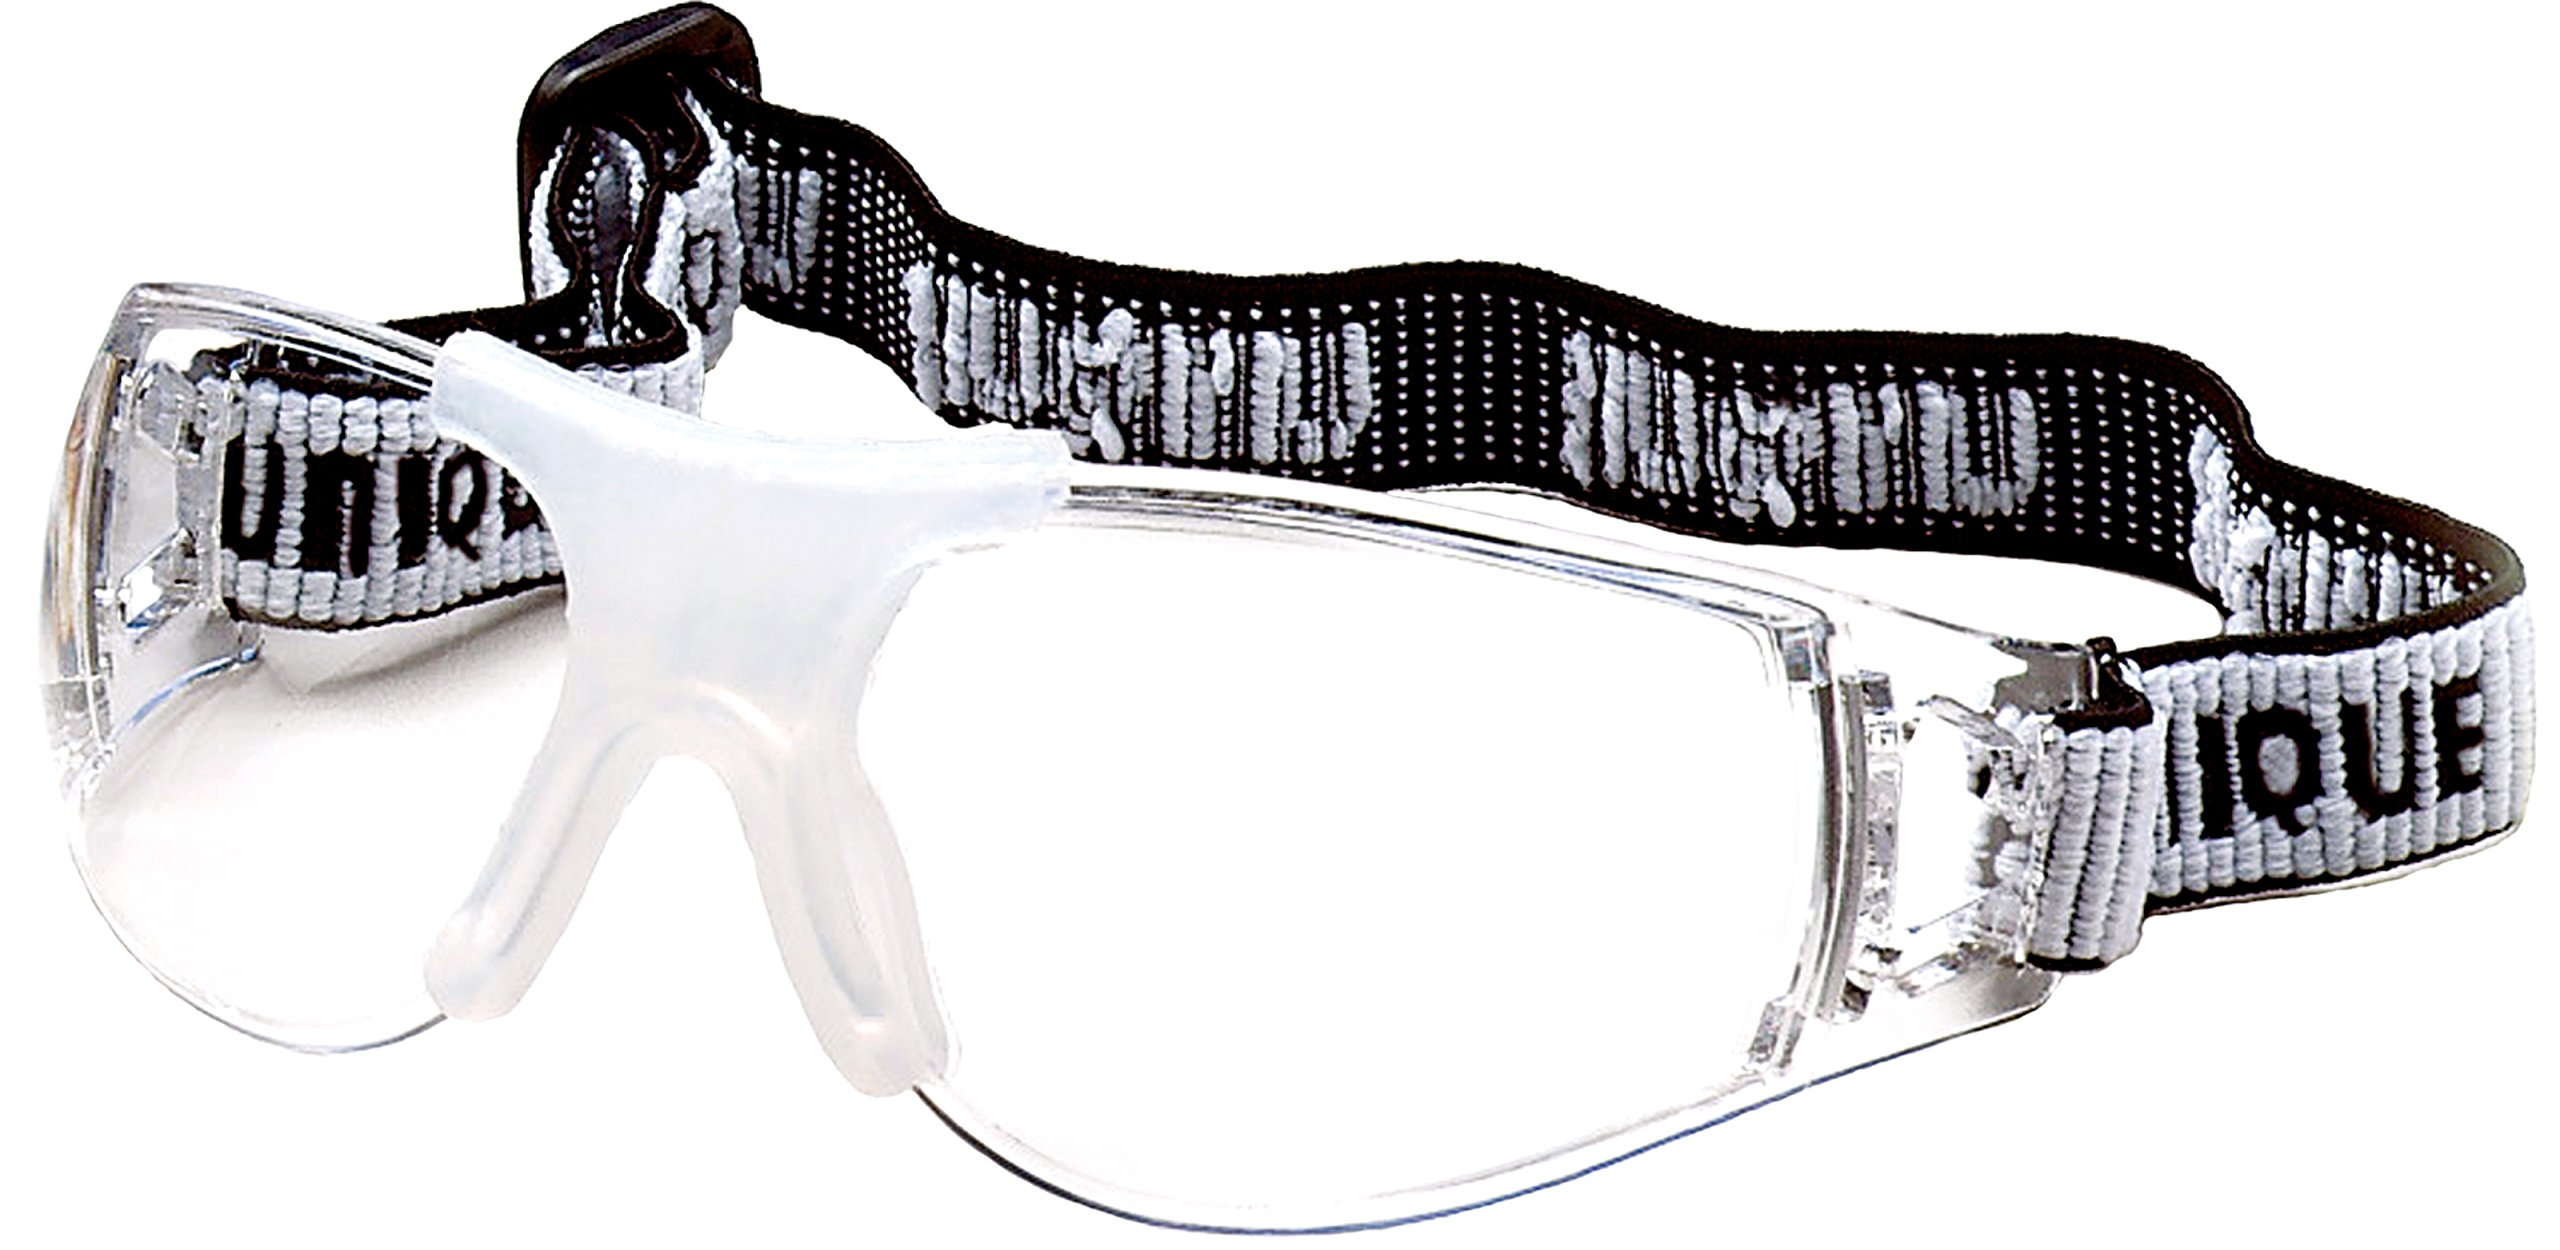 Unique Sports Super Specs Eye Protectors by Unique Sports (Image #1)